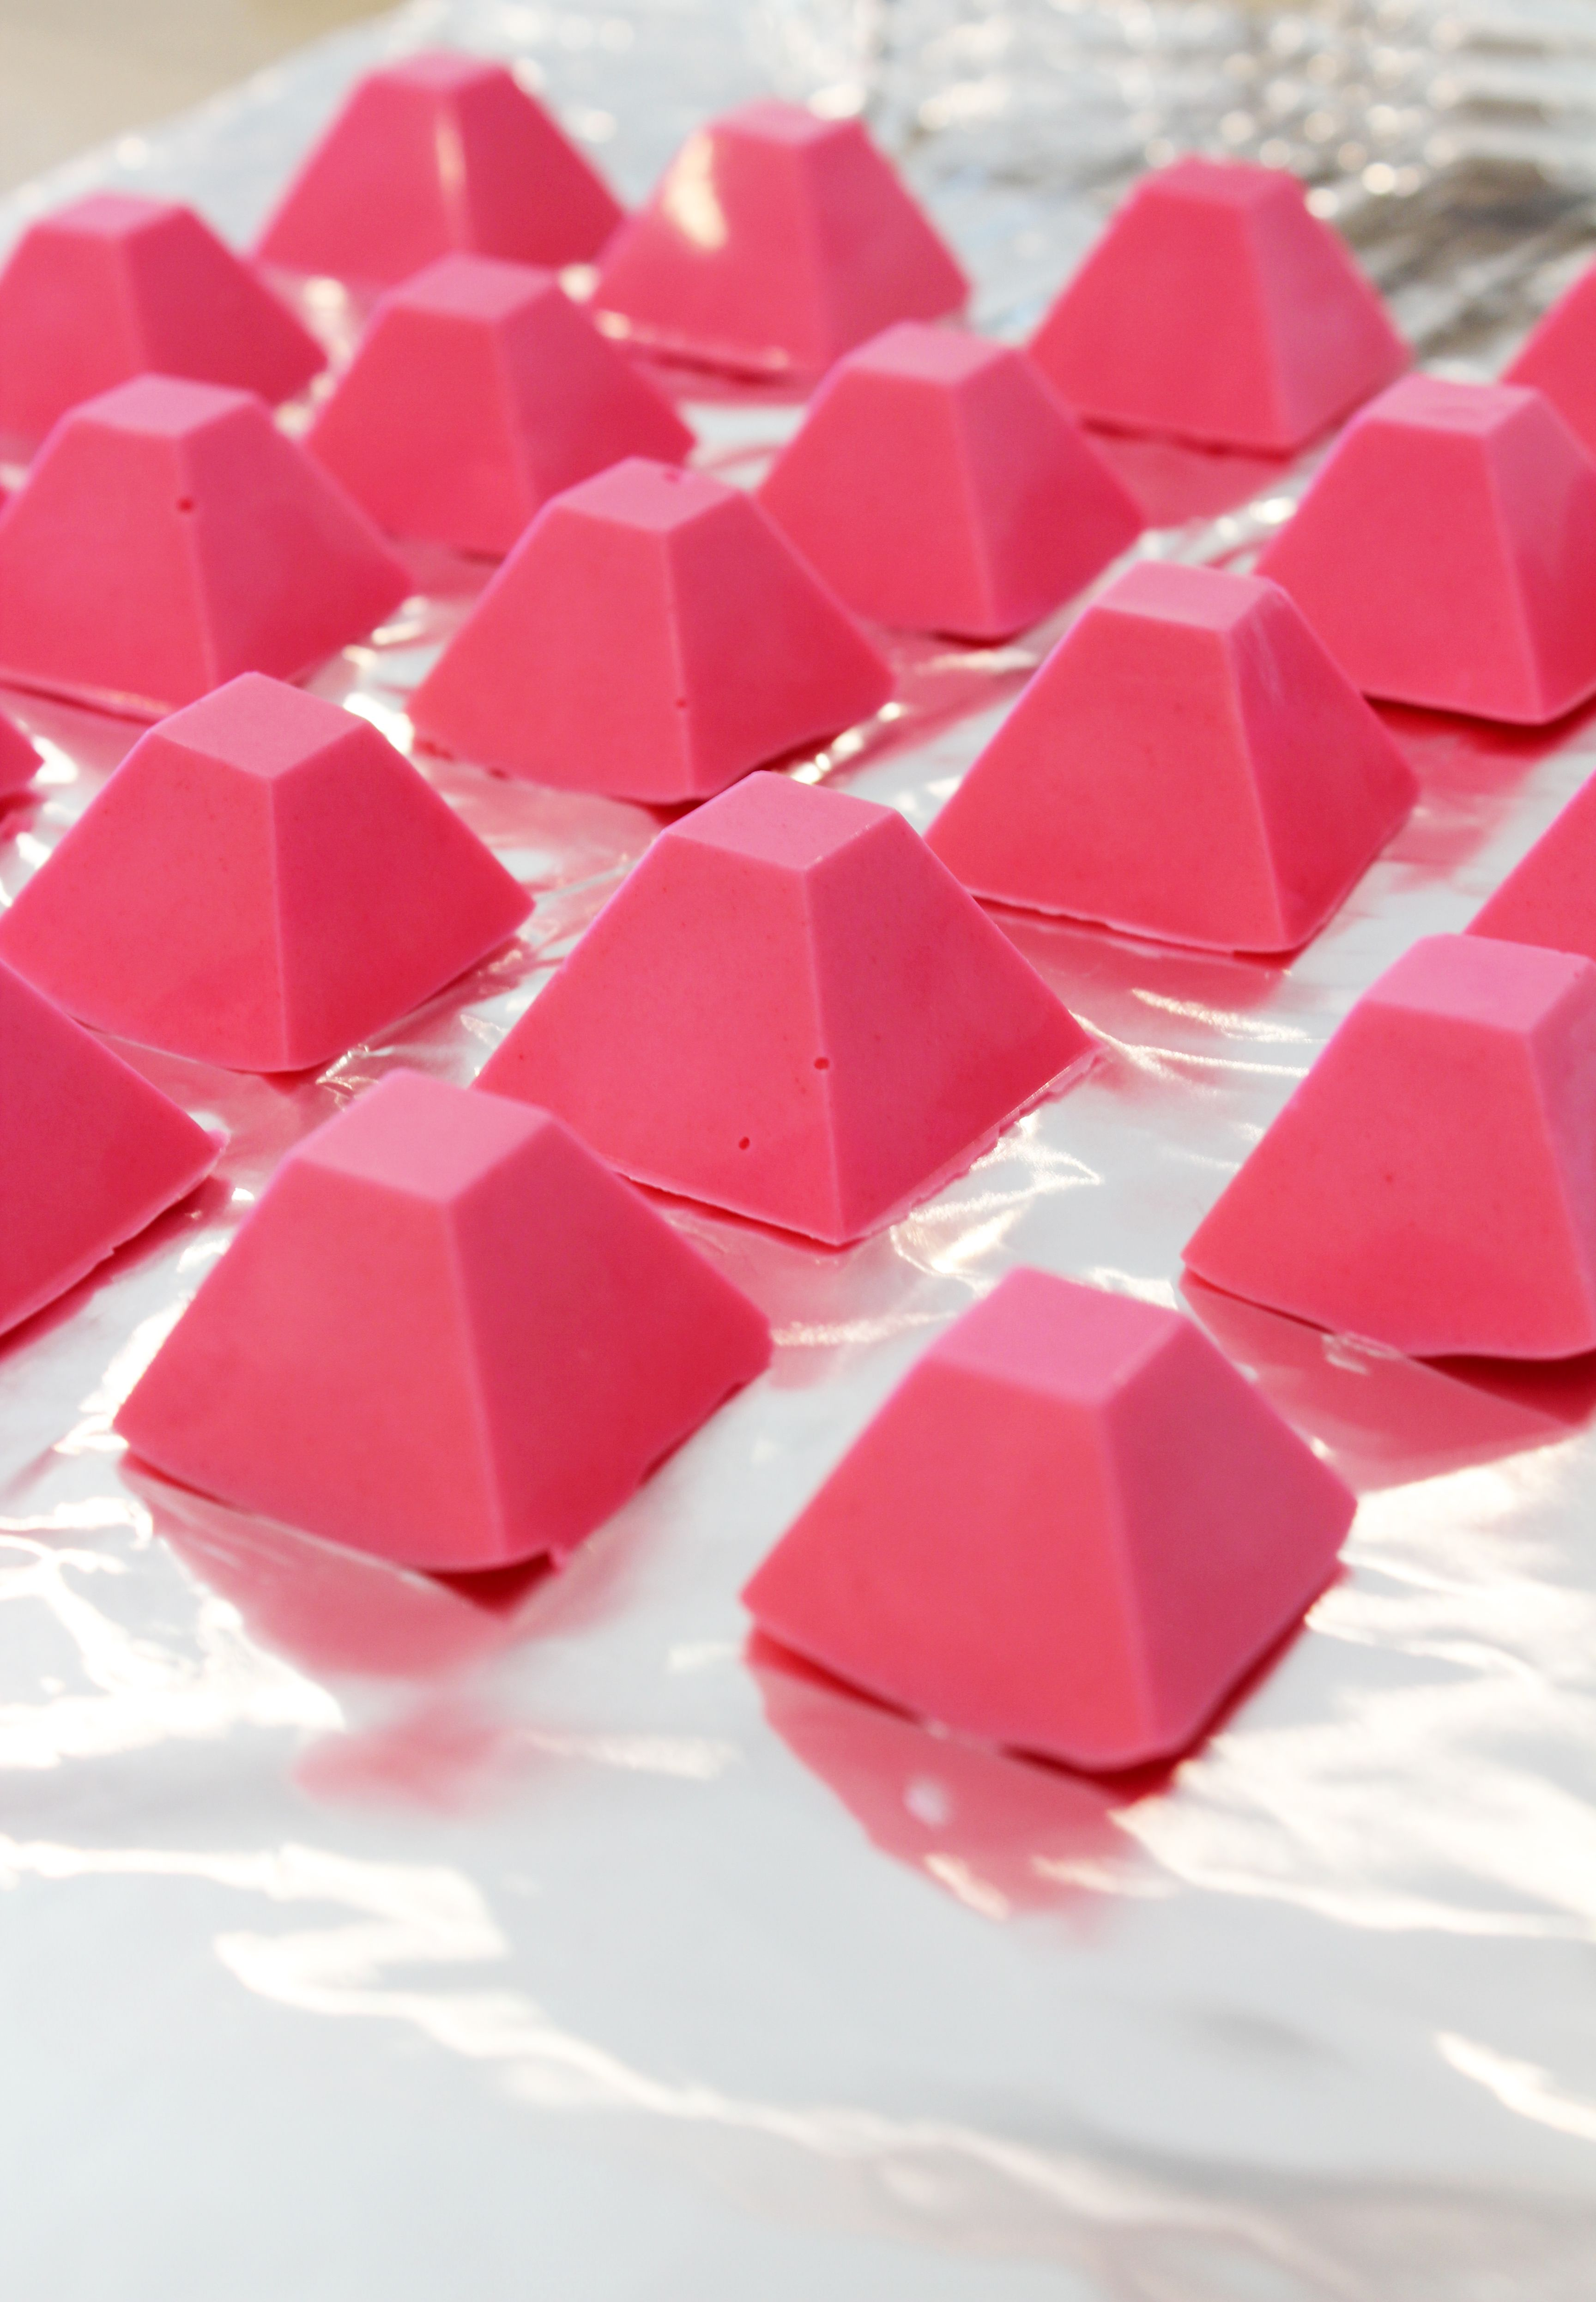 DIY CHOCOLATE PYRAMIDS | truffles, candy & chocolate | Pinterest ...